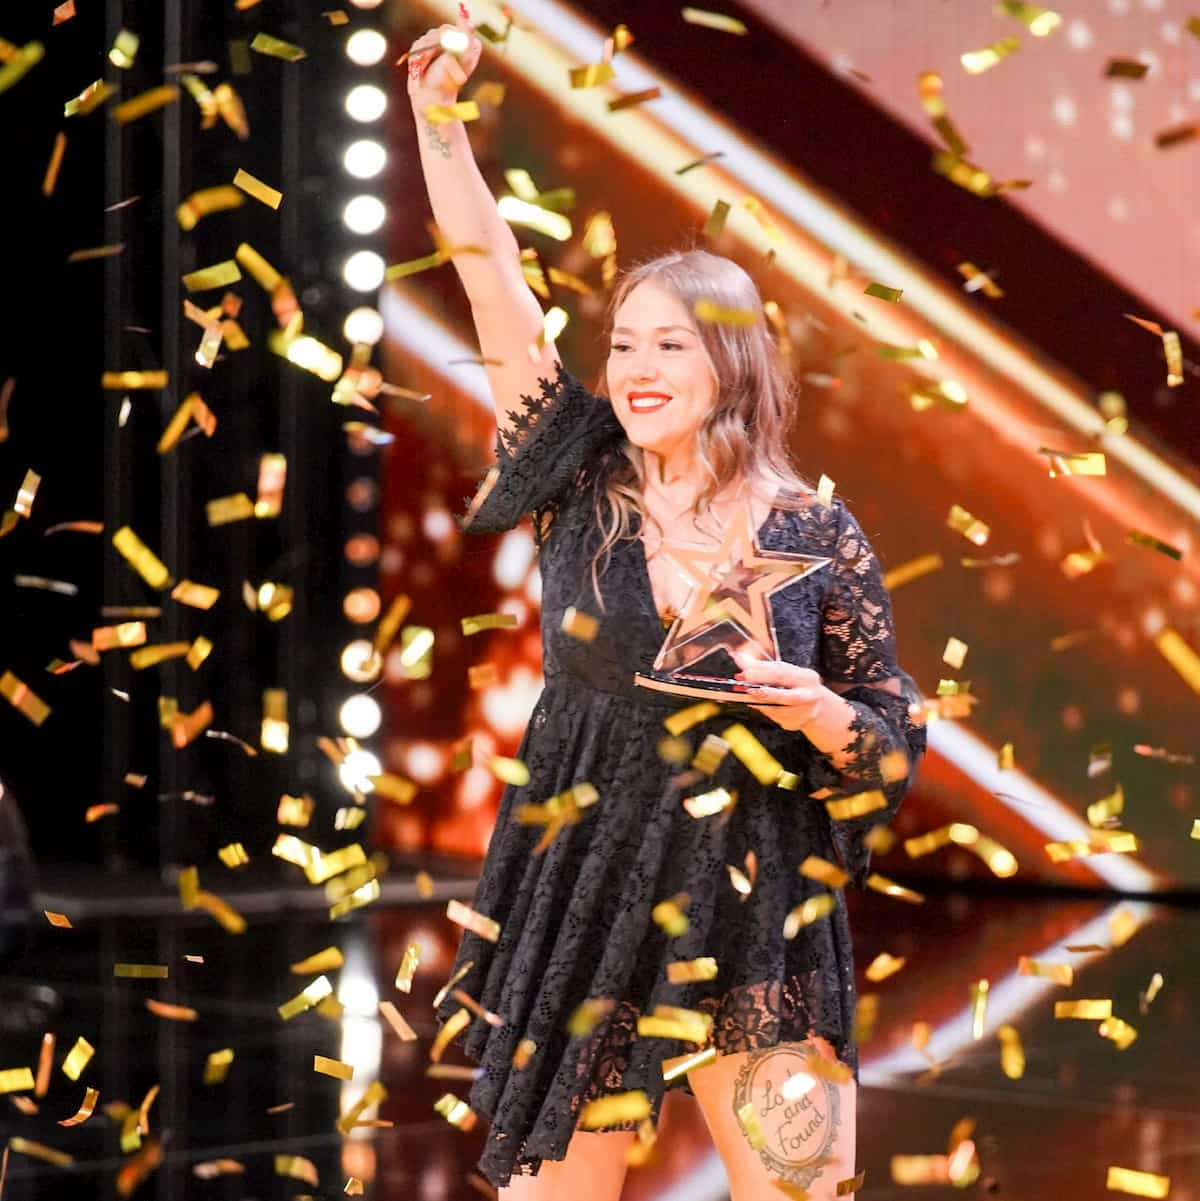 Nina Richel im Finale Supertalent am 21.12.2019